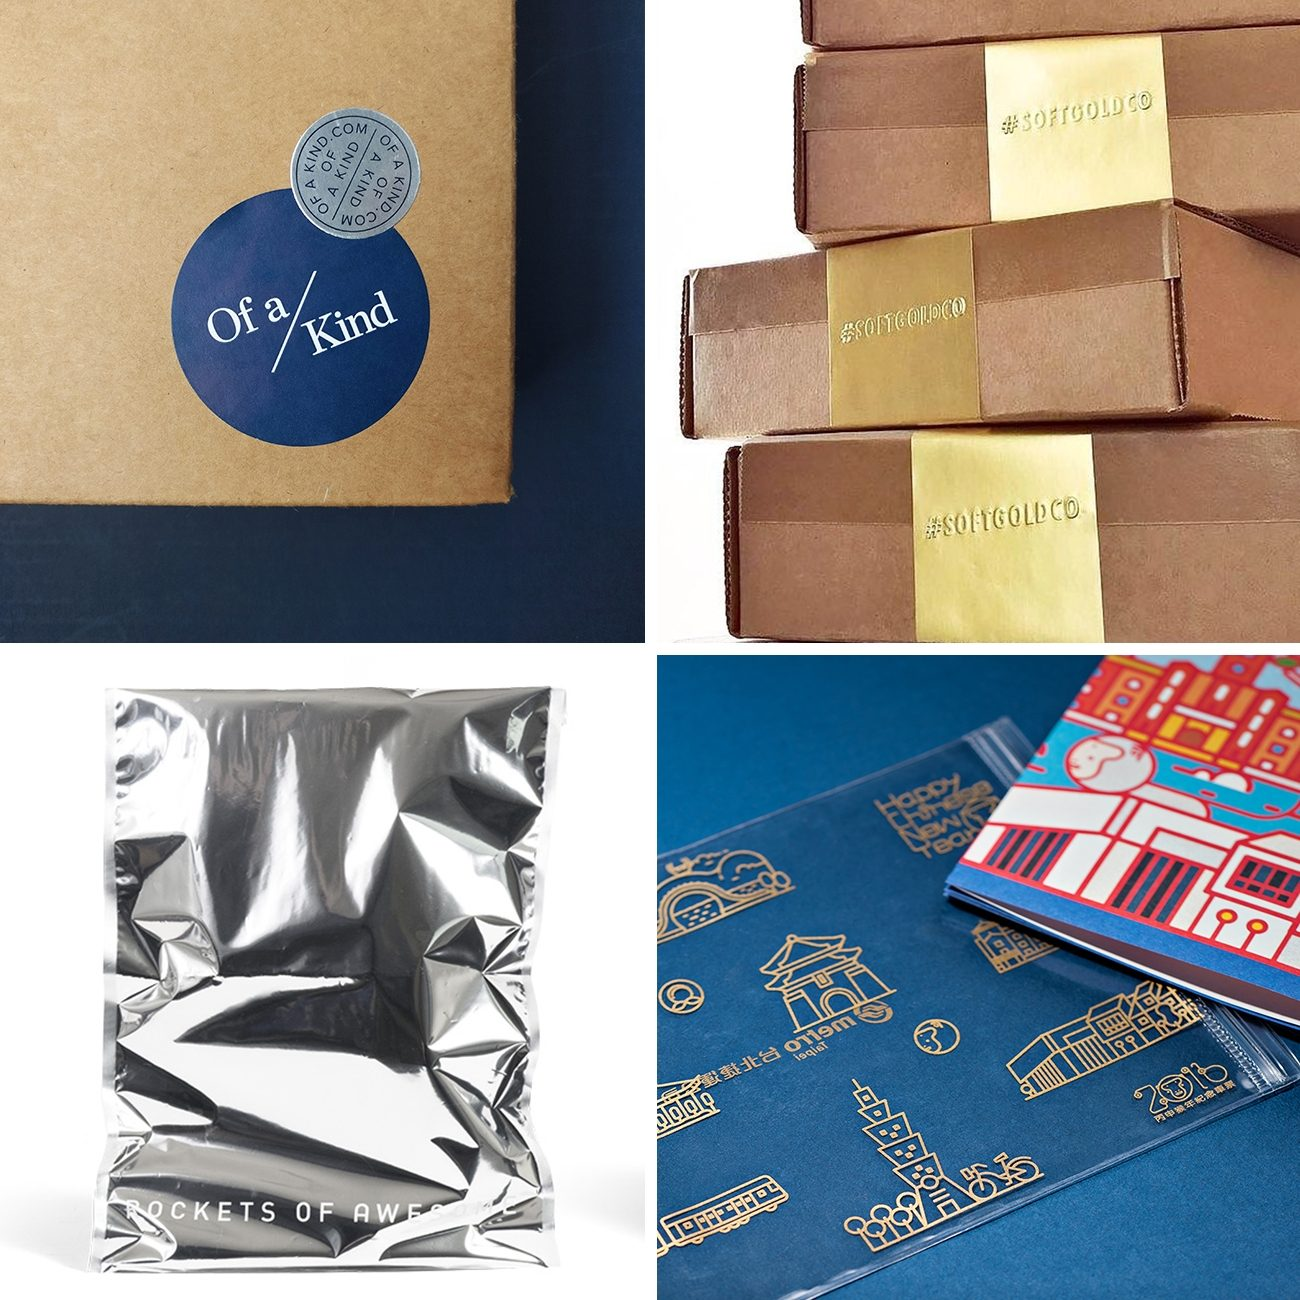 Photos via: FourPlus and Ivaylo Nedkov, Lumi, Soft Gold Co, Lumi, Midnight Design and Kuocheng Liao 60 Ideas to Spruce Up Your Holiday Packaging Design